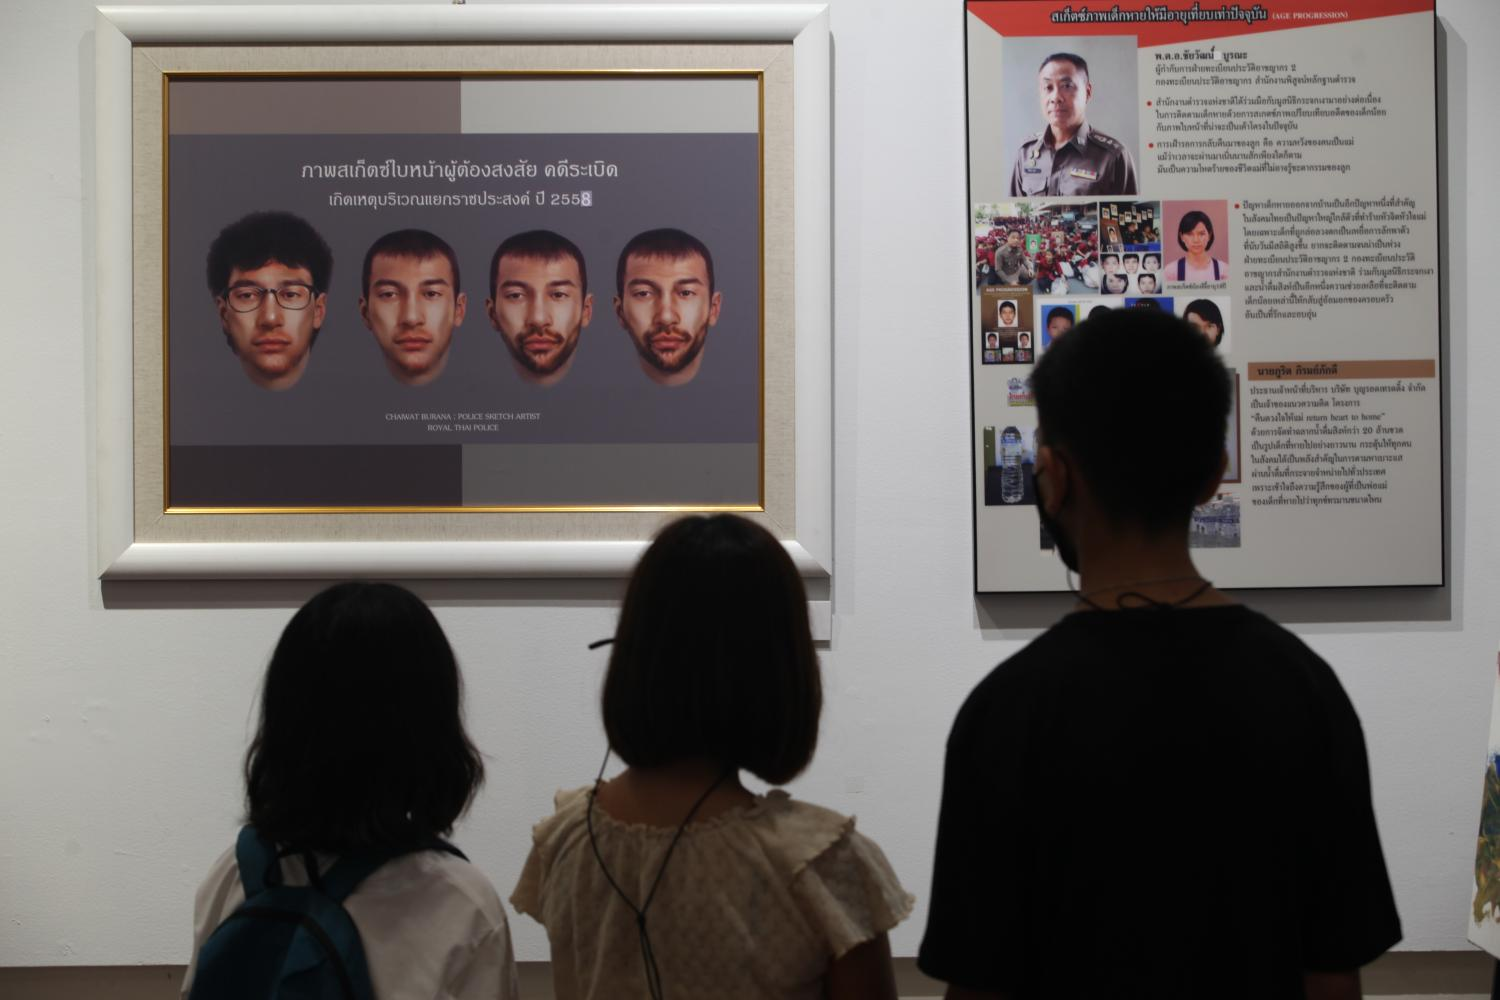 Young visitors look at digitally-sketched faces of Bilal Mohammed, one of two suspects in the deadly explosion at the Erawan Shrine at Ratchaprasong intersection in 2014, at an exhibition featuring faces of missing people at Silpa Bhirasri's House in Bangkok. (Photo by Jetjaras Na Ranong)